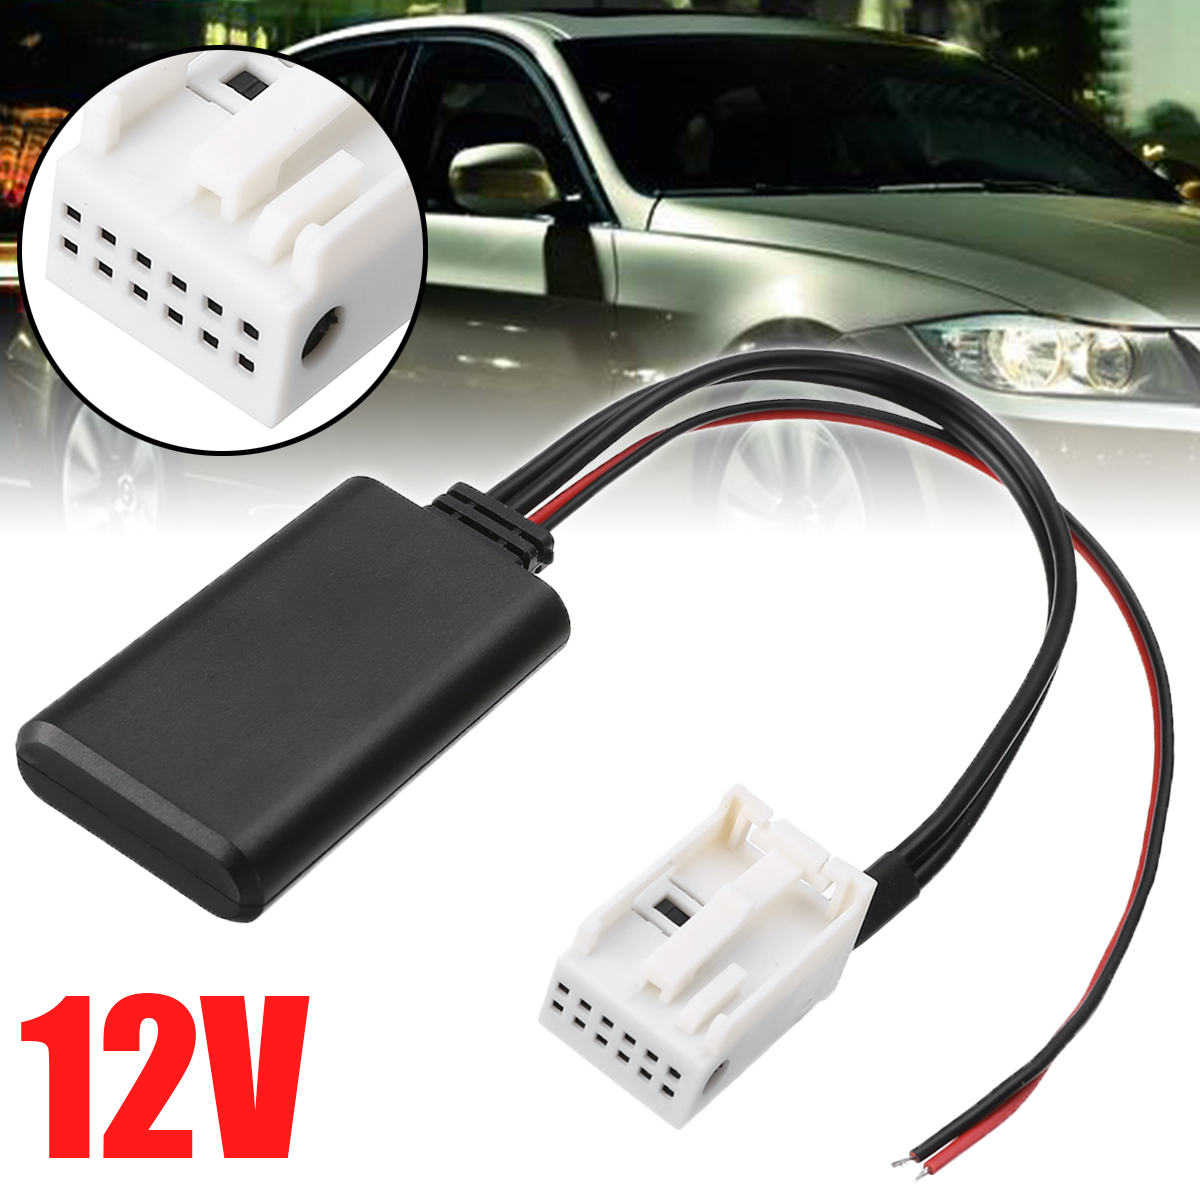 12Pin 12V Radio Stereo Aux Adapter Professional <font><b>bluetooth</b></font> Audio Adapter Aux Cable For <font><b>BMW</b></font> E60 2004-2010 E63 E64 2003-2010 E61 image